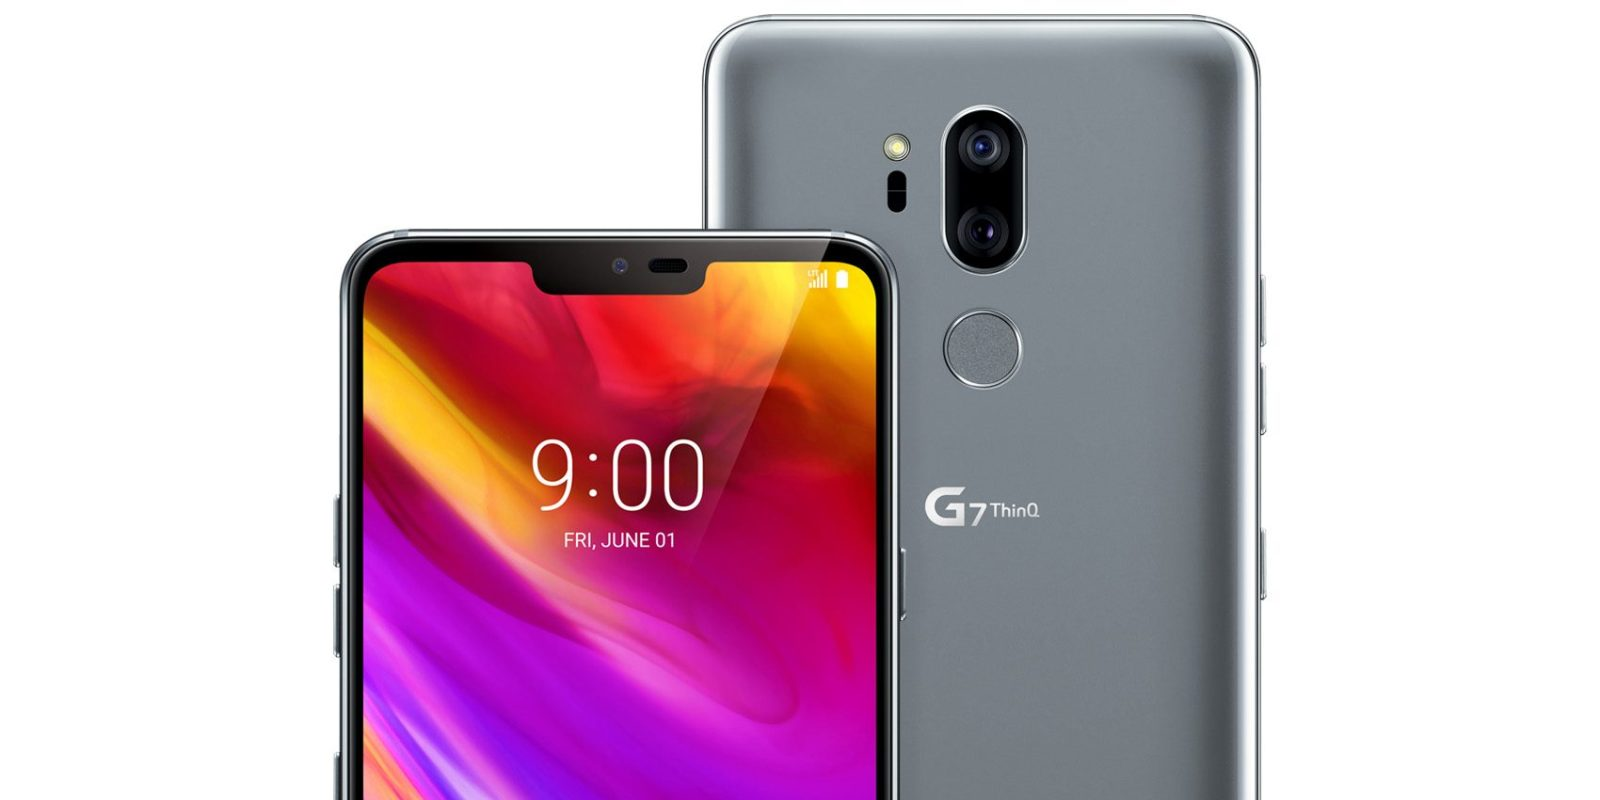 LG's notched G7 ThinQ Android Smartphone hits $395 in